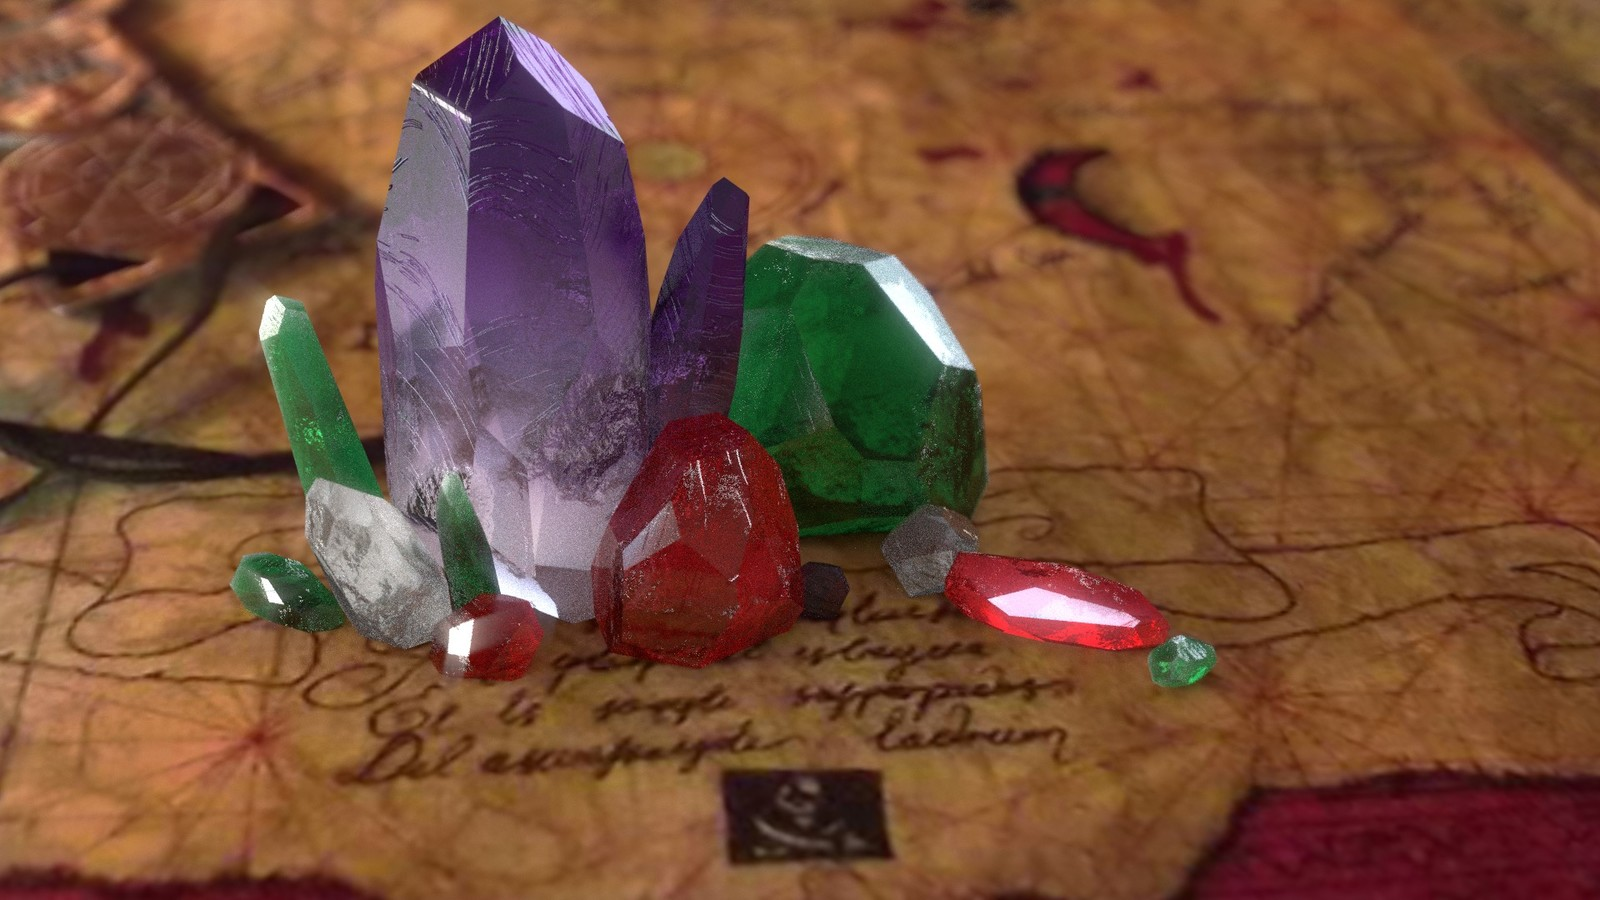 Realistic Gemstones (courtesy Kent Trammel CG Cookie Shader Course)